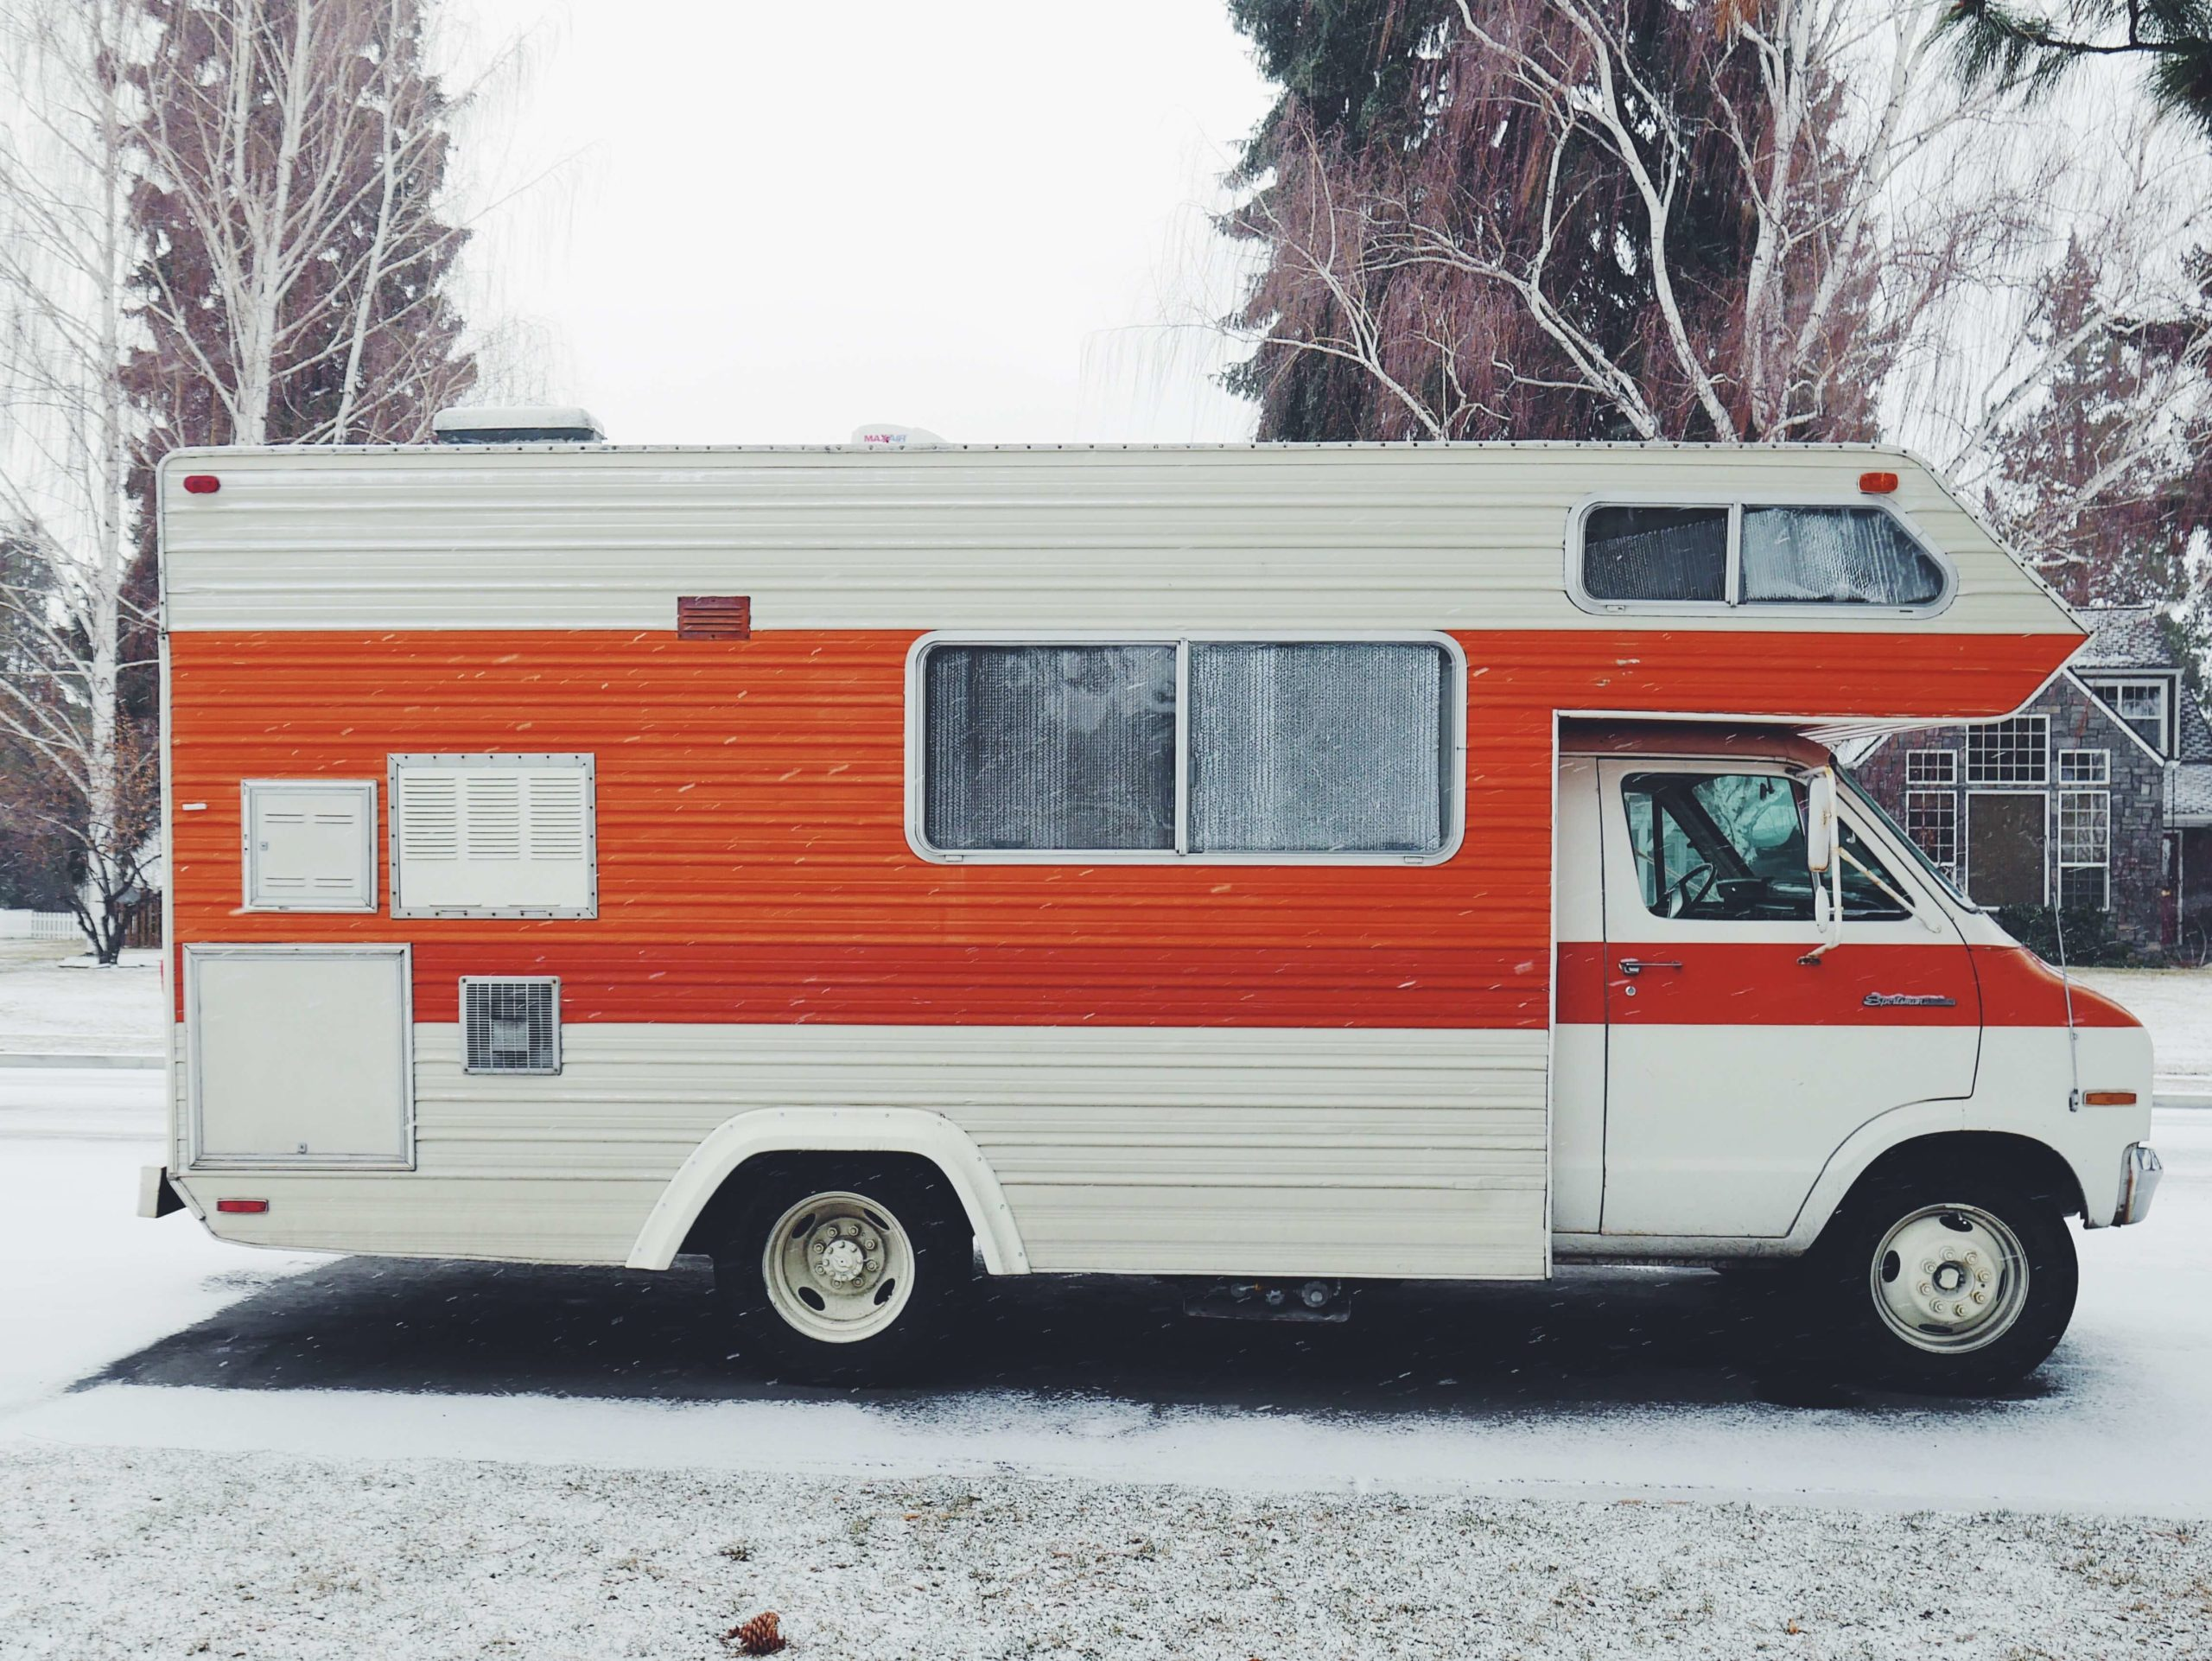 How to Buy a Four-Season RV